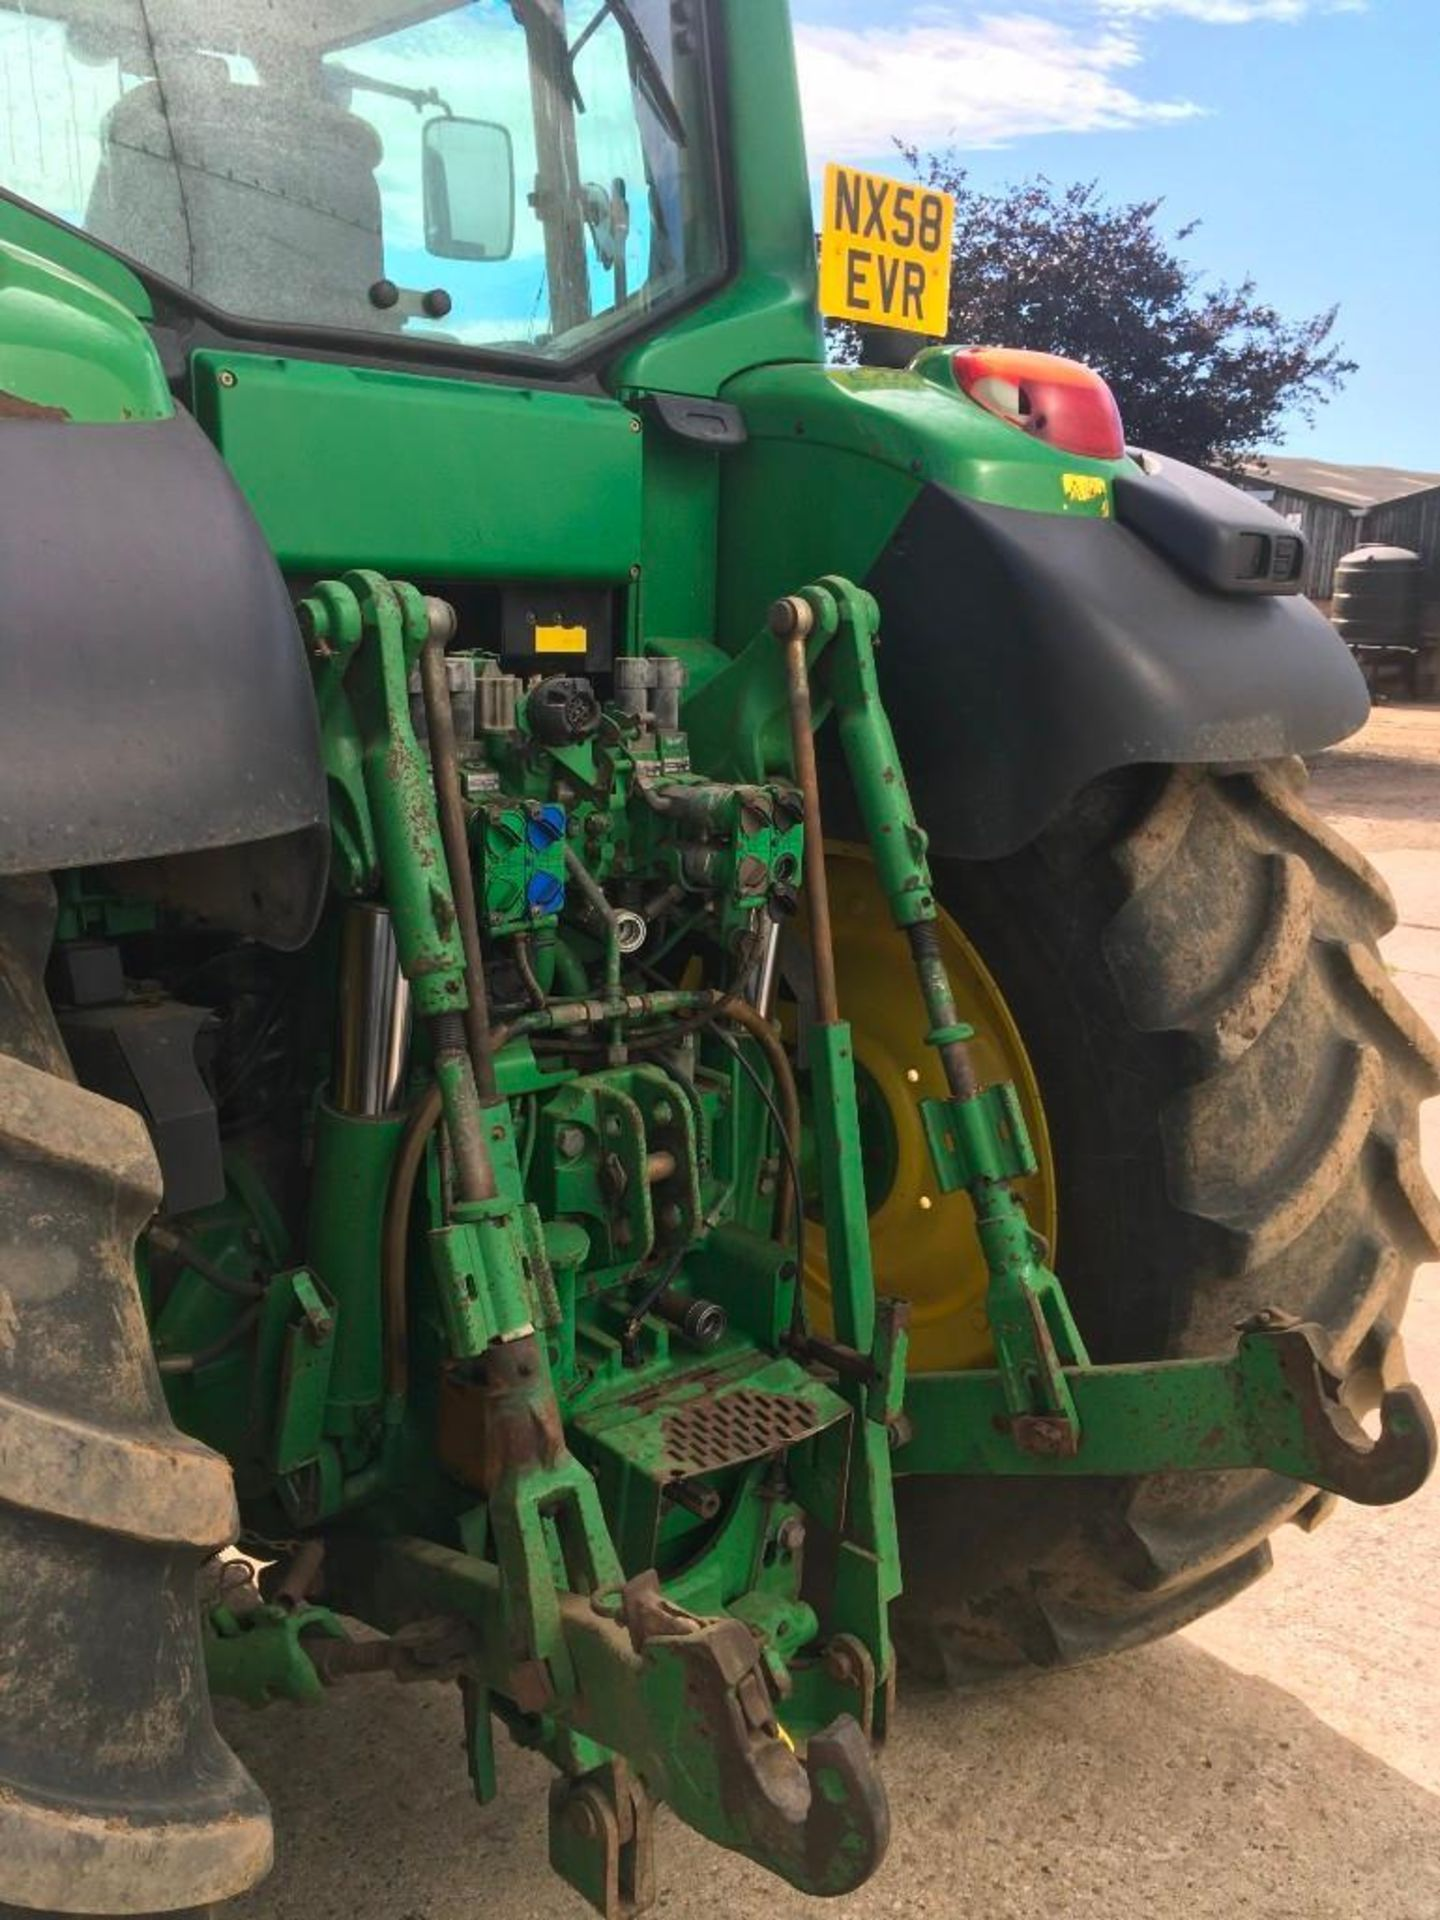 2008 John Deere 7530 tractor with auto quad gear box, 4 spool valves, pick up hitch, air seat, front - Image 9 of 14